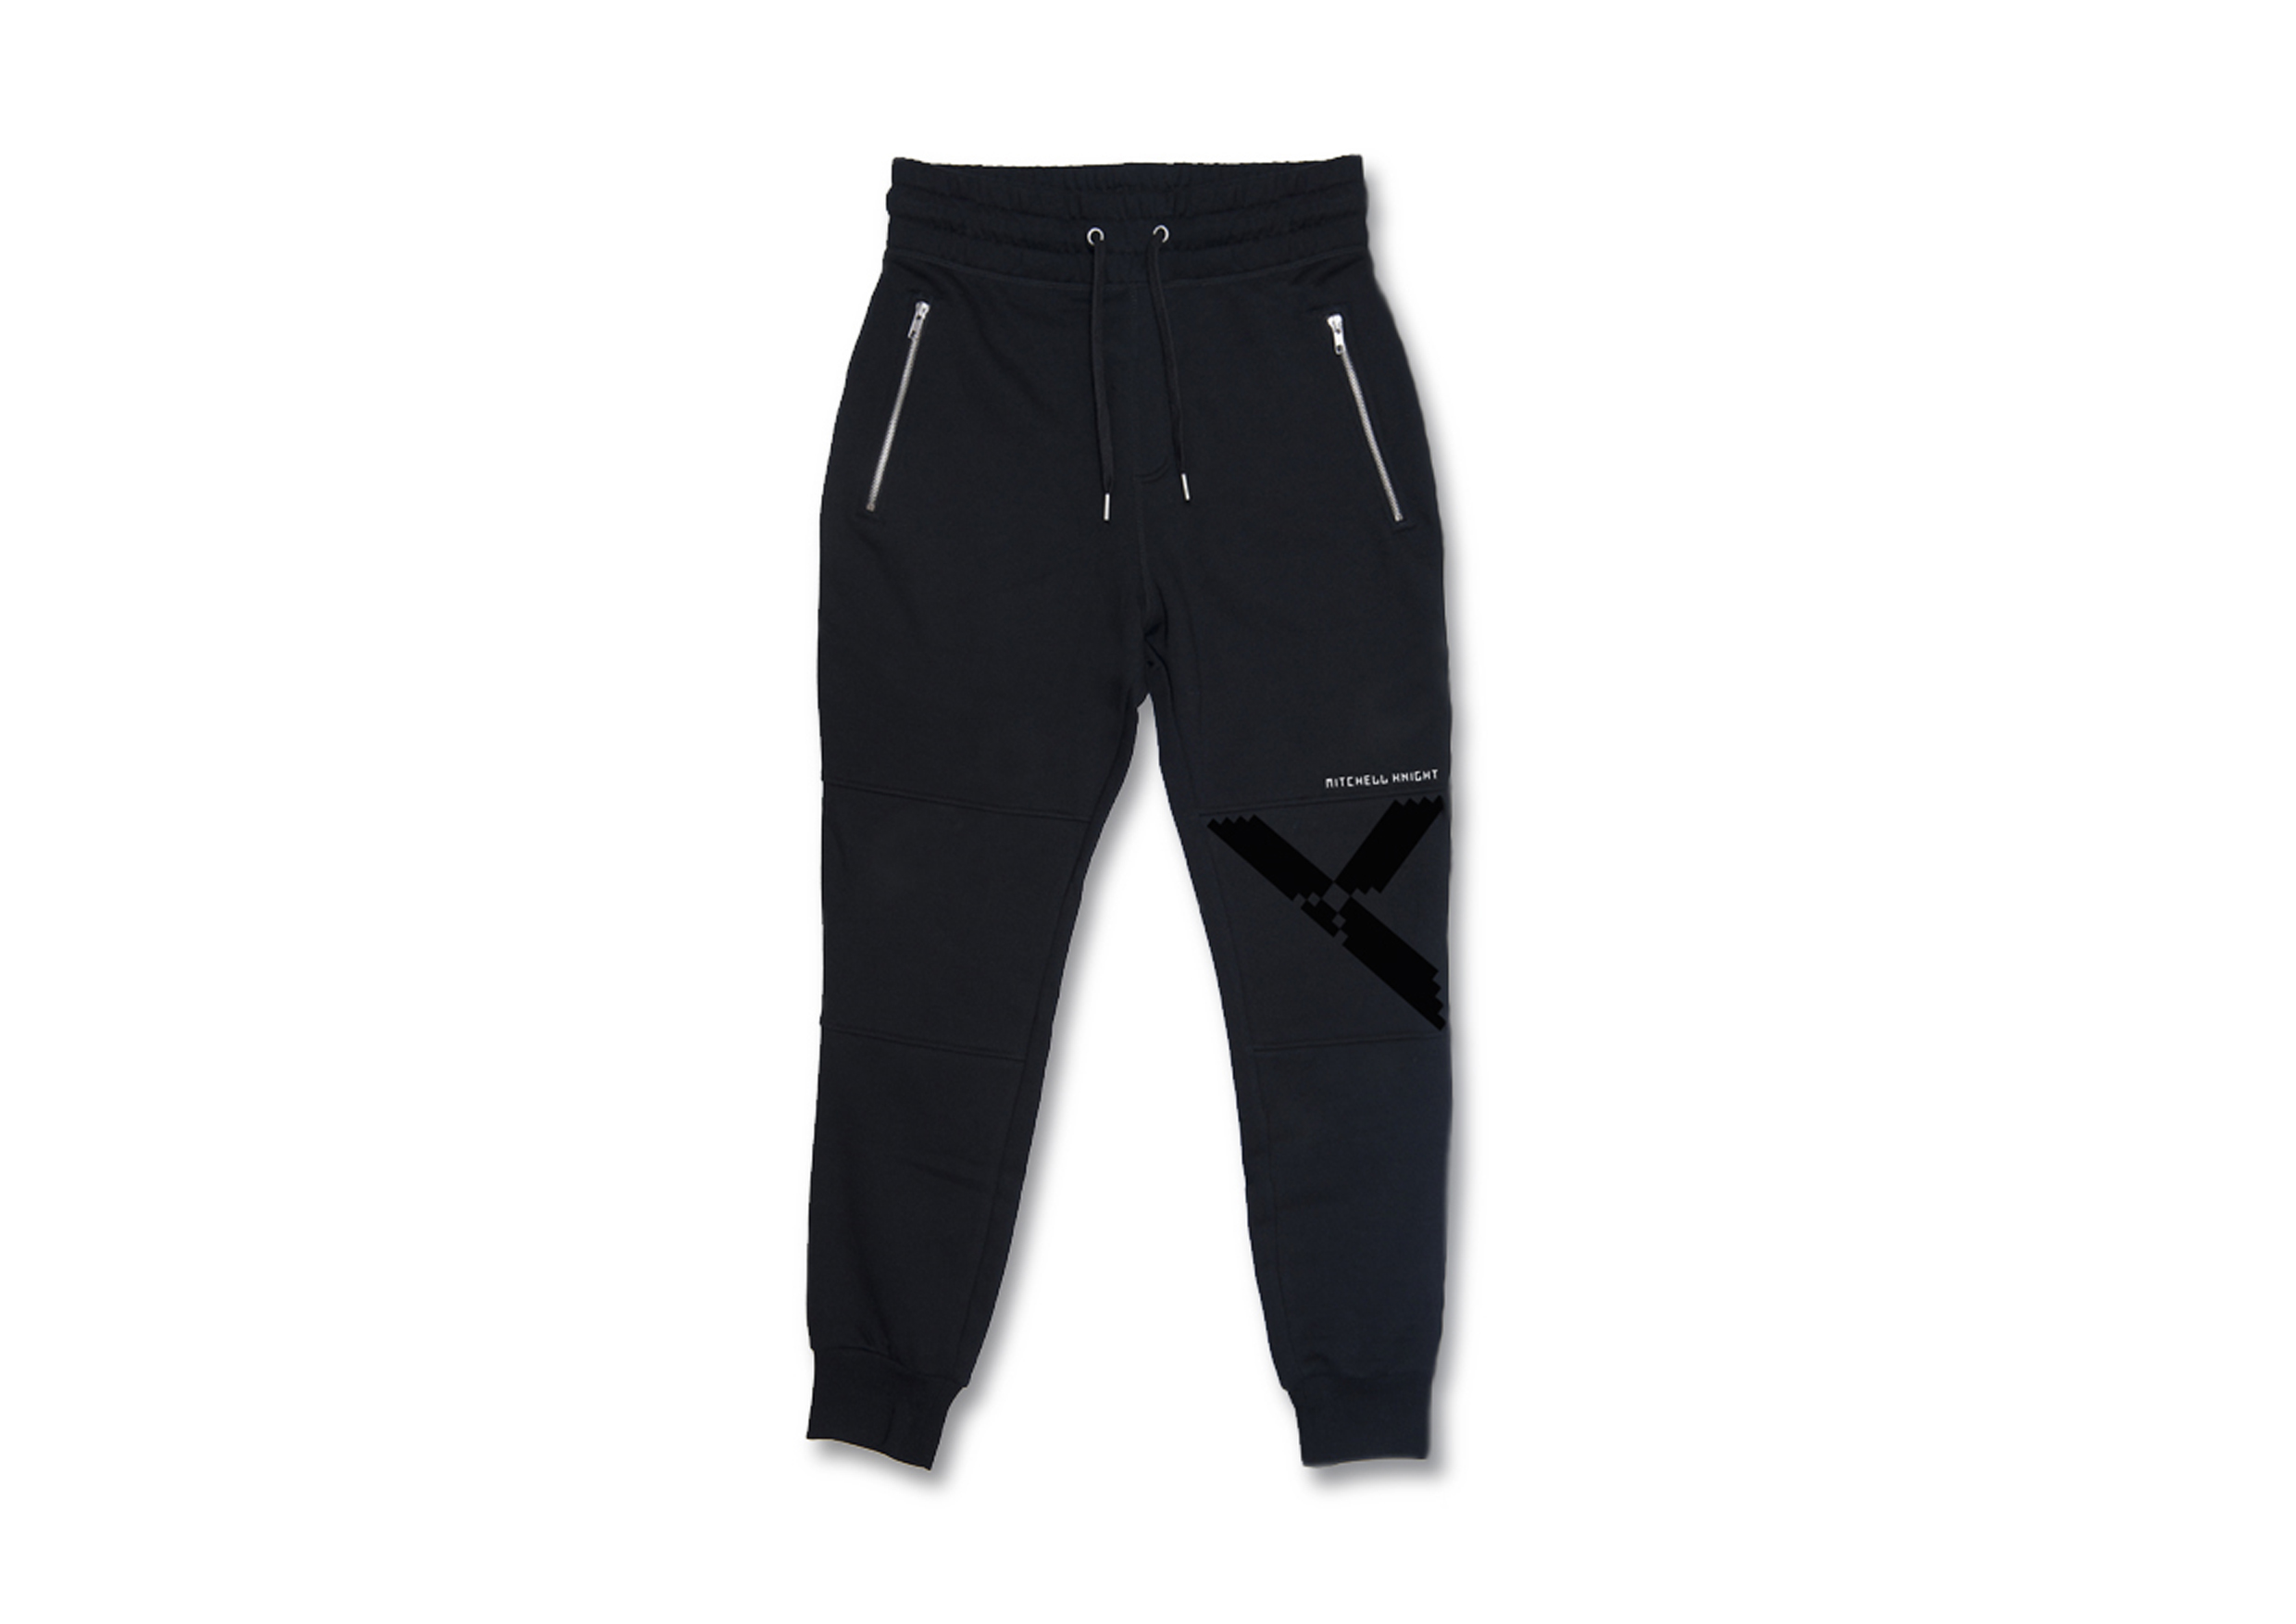 Mitchell Knight, Sportswear, clothing range, Tag, clothing, Adelaide, Design, graphic design, creative, sweatpants